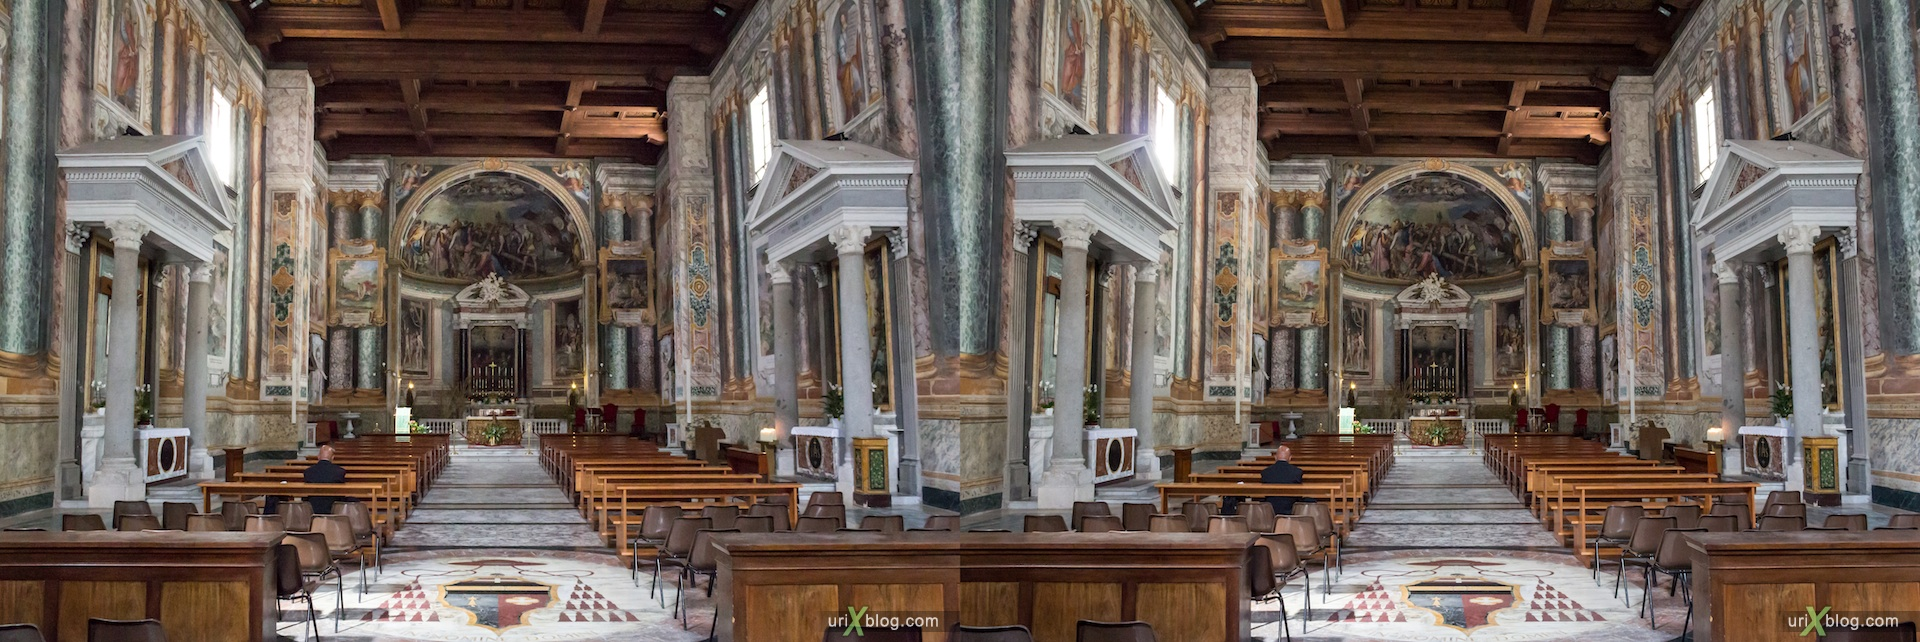 2012, church of San Vitale, Rome, Italy, cathedral, monastery, Christianity, Catholicism, 3D, stereo pair, cross-eyed, crossview, cross view stereo pair